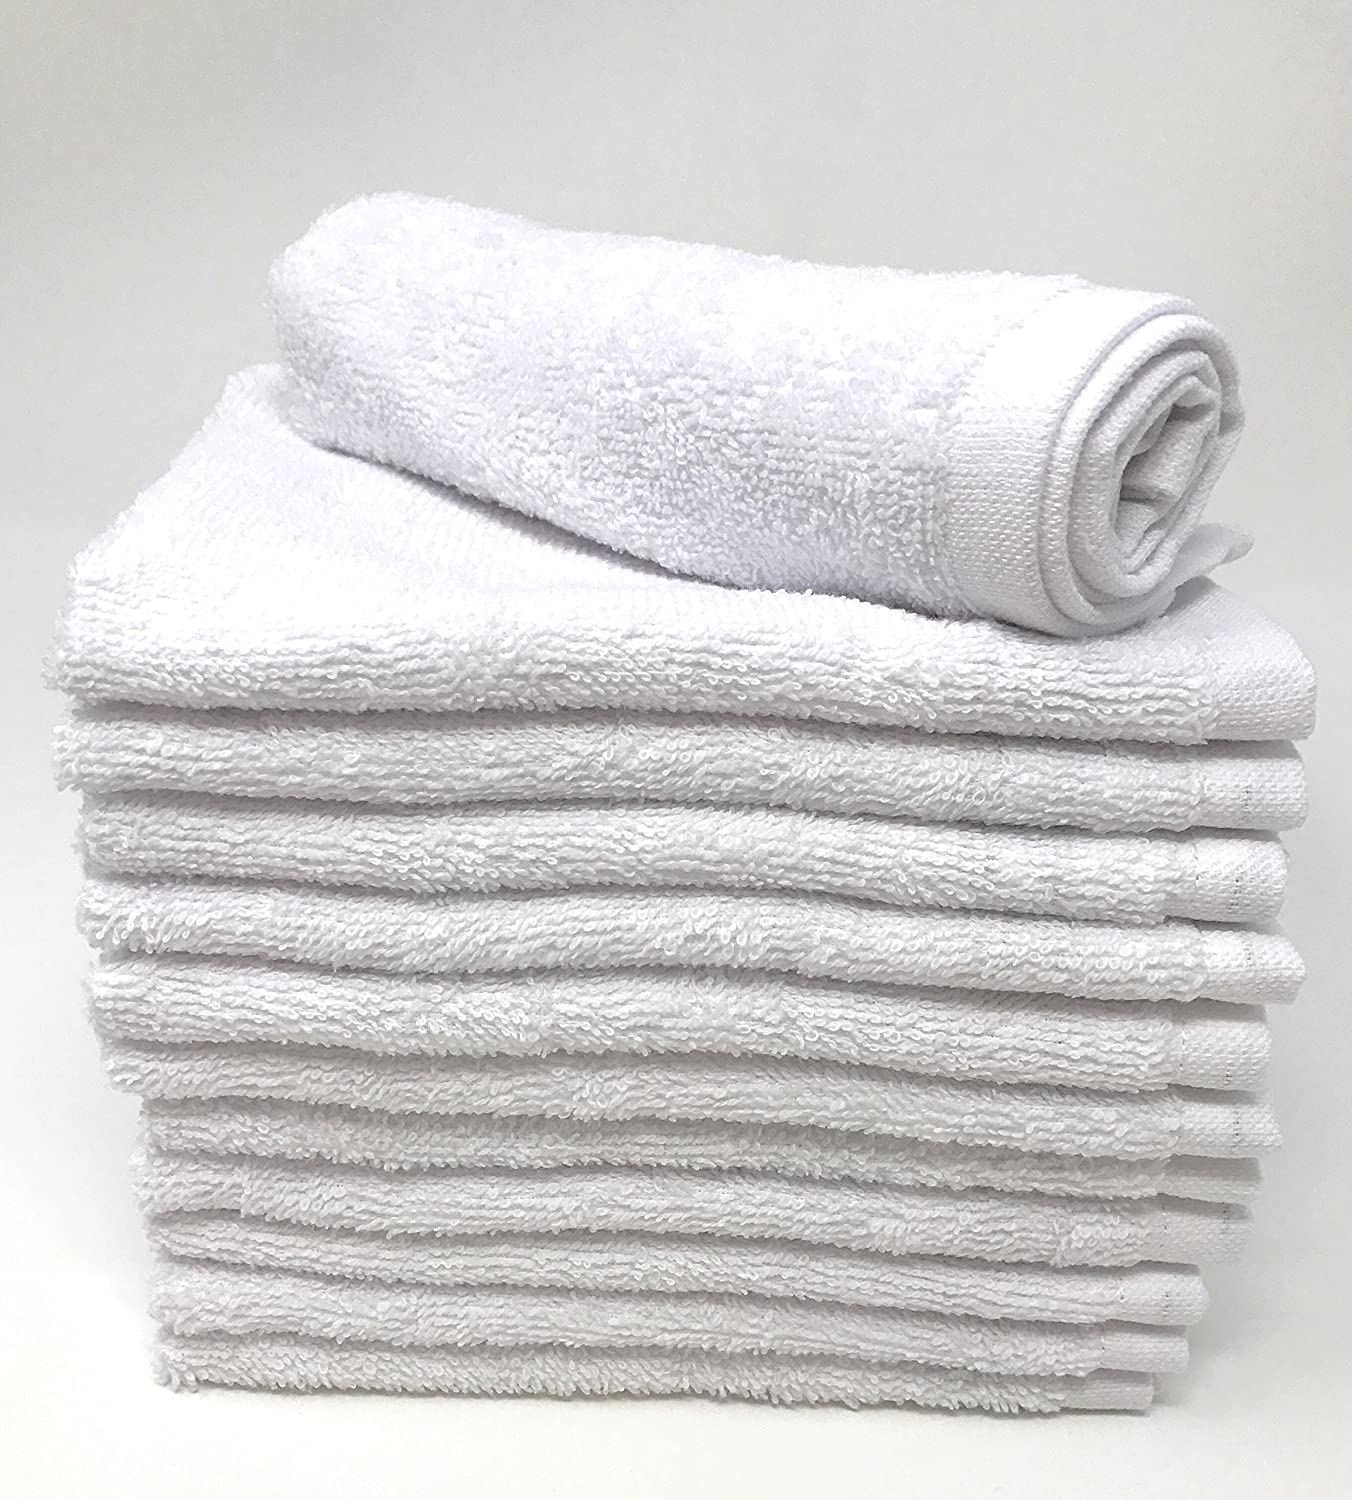 Goza Towels Luxury Cotton Wash Cloths (12 Pack) Easy Care, Fingertip Towels, Facial Towelettes, Cotton Hand Towels (White, 12x12)